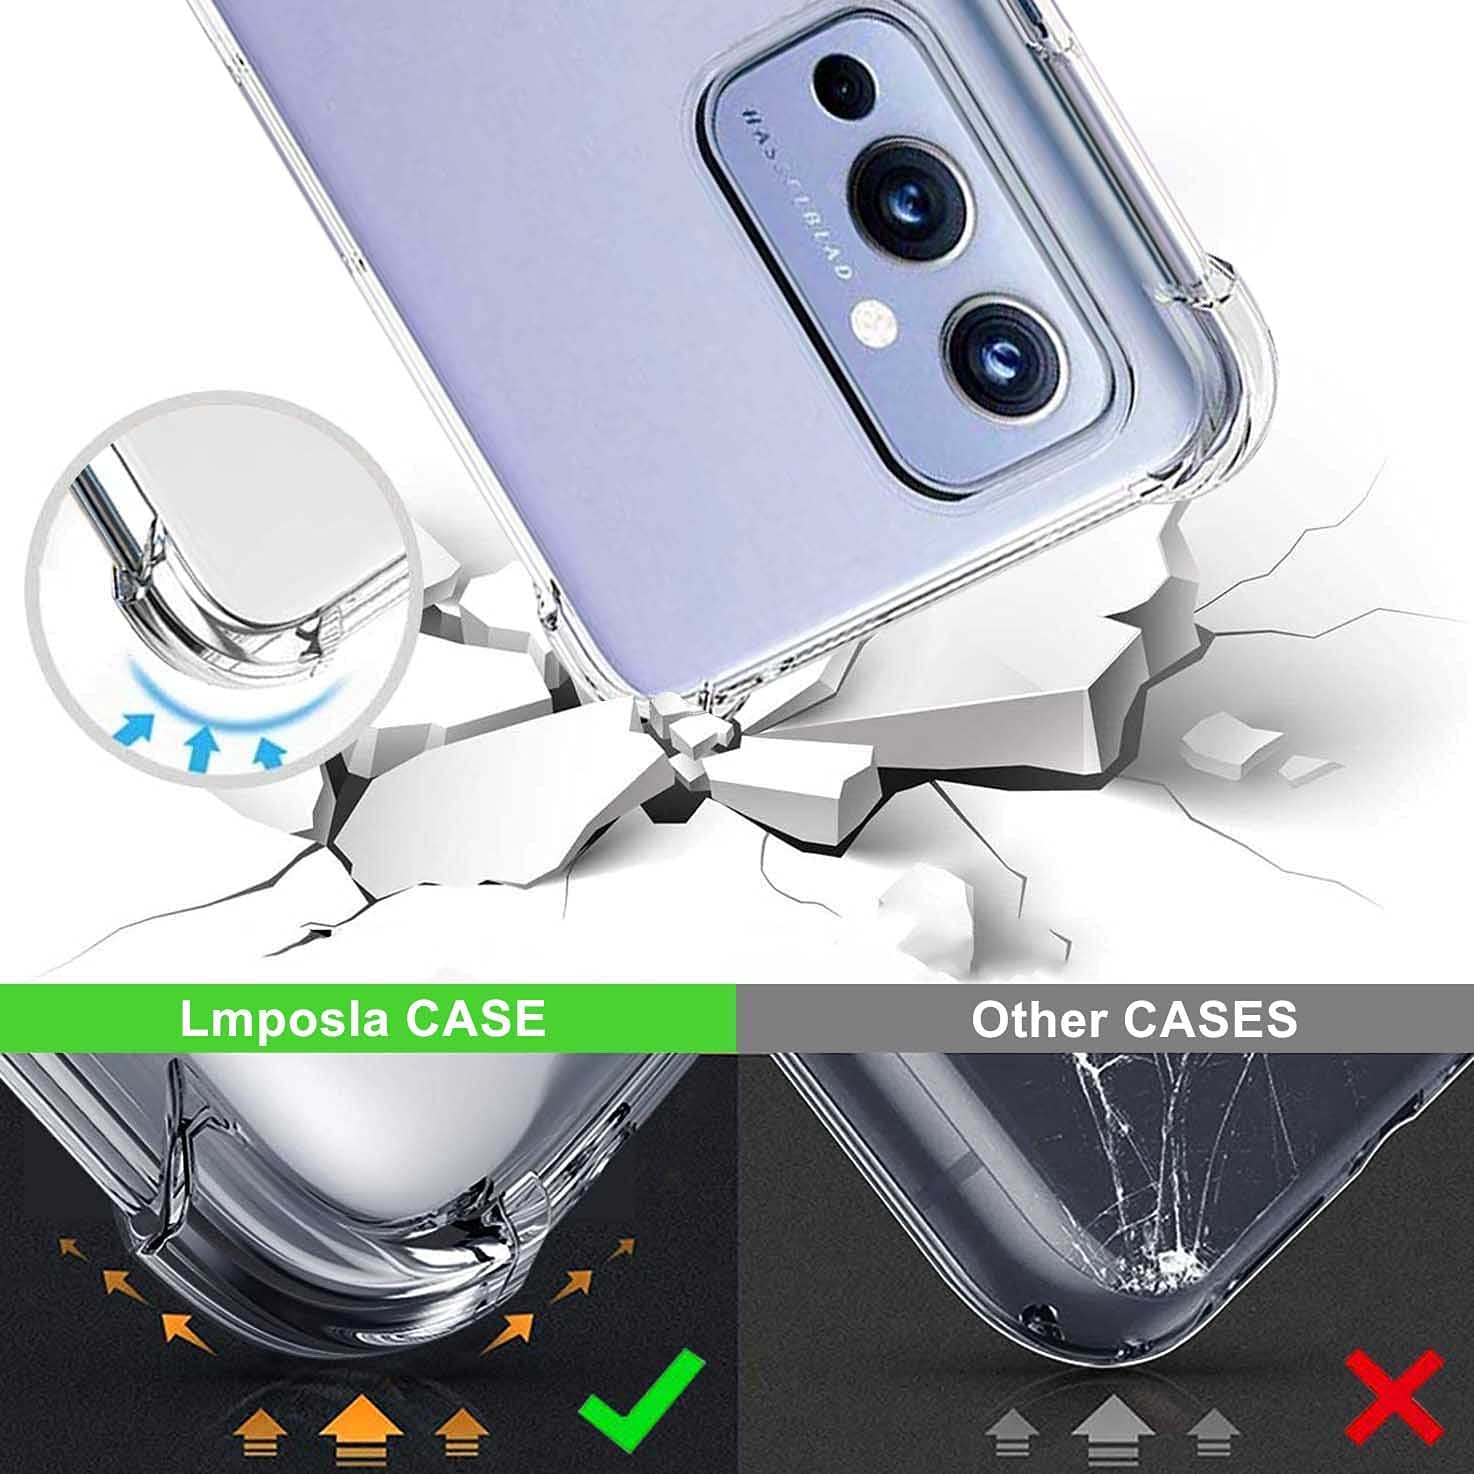 Lmposla for Oneplus 9 Case, 1+ 9 Case, Shockproof Slim Ultra-Thin Flexible TPU Soft Silicone Airbag Anti-Drop Case Cover for Oneplus 9 (Purple lace/Mandala)